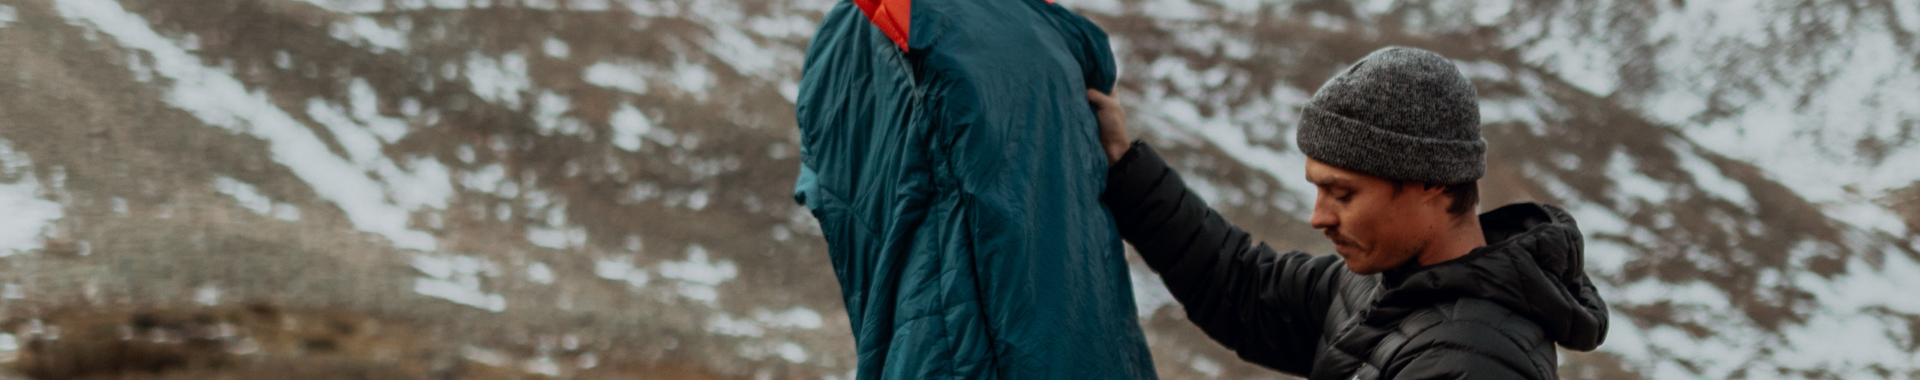 Man holding a Sierra Designs sleeping bag